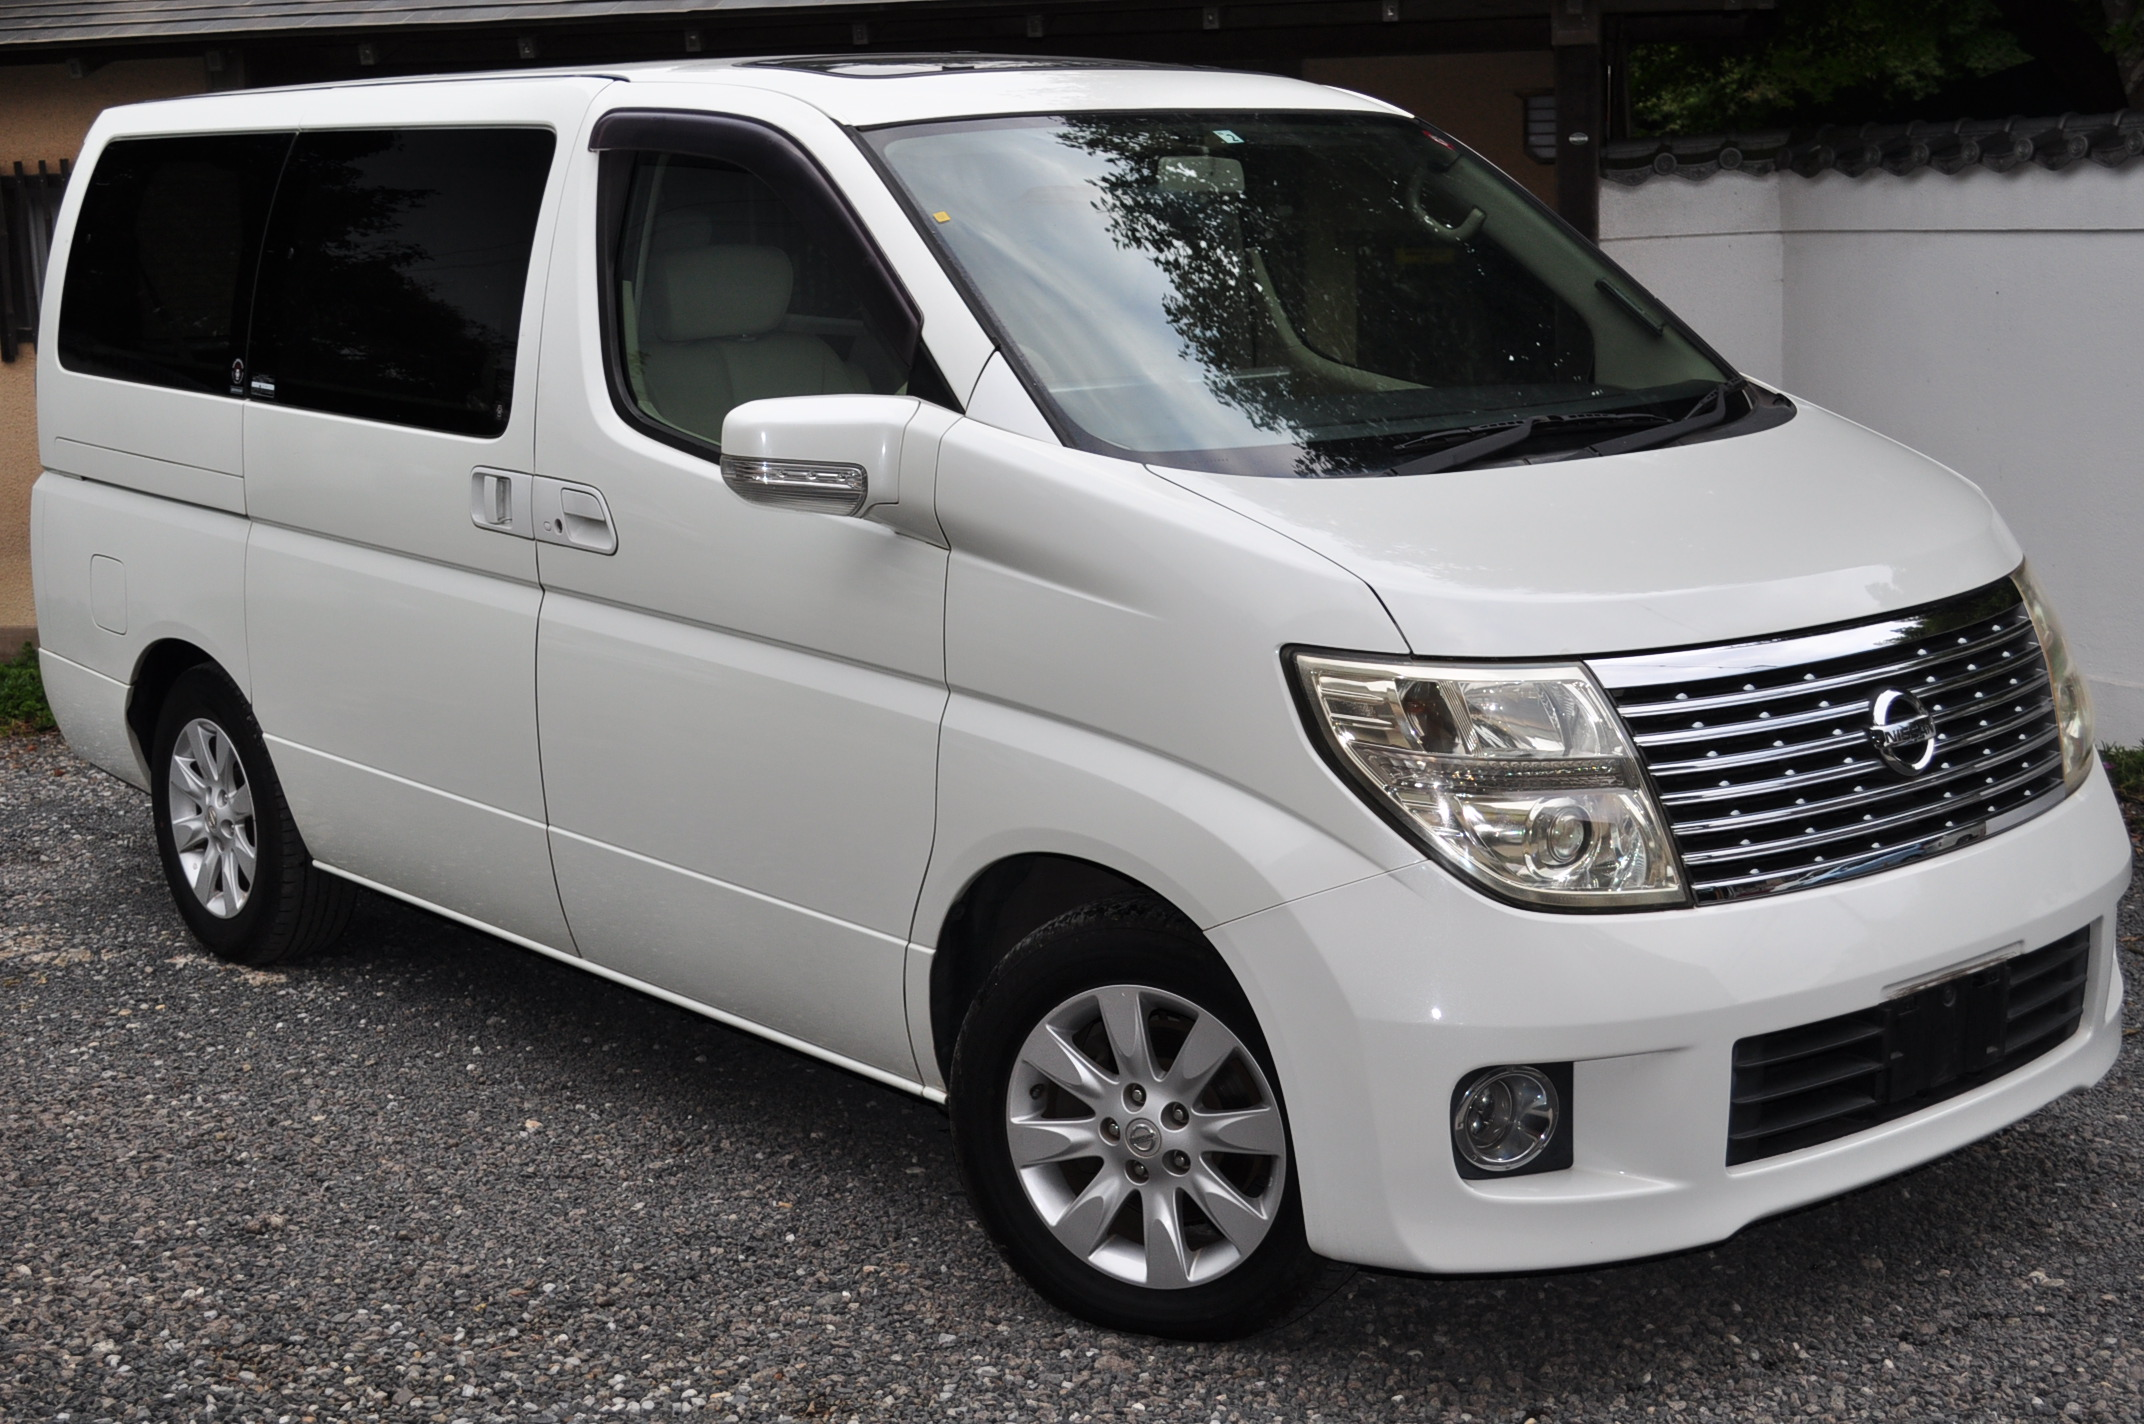 2005 (Sept) Nissan Elgrand (E51) X grade with leather 3500cc auto